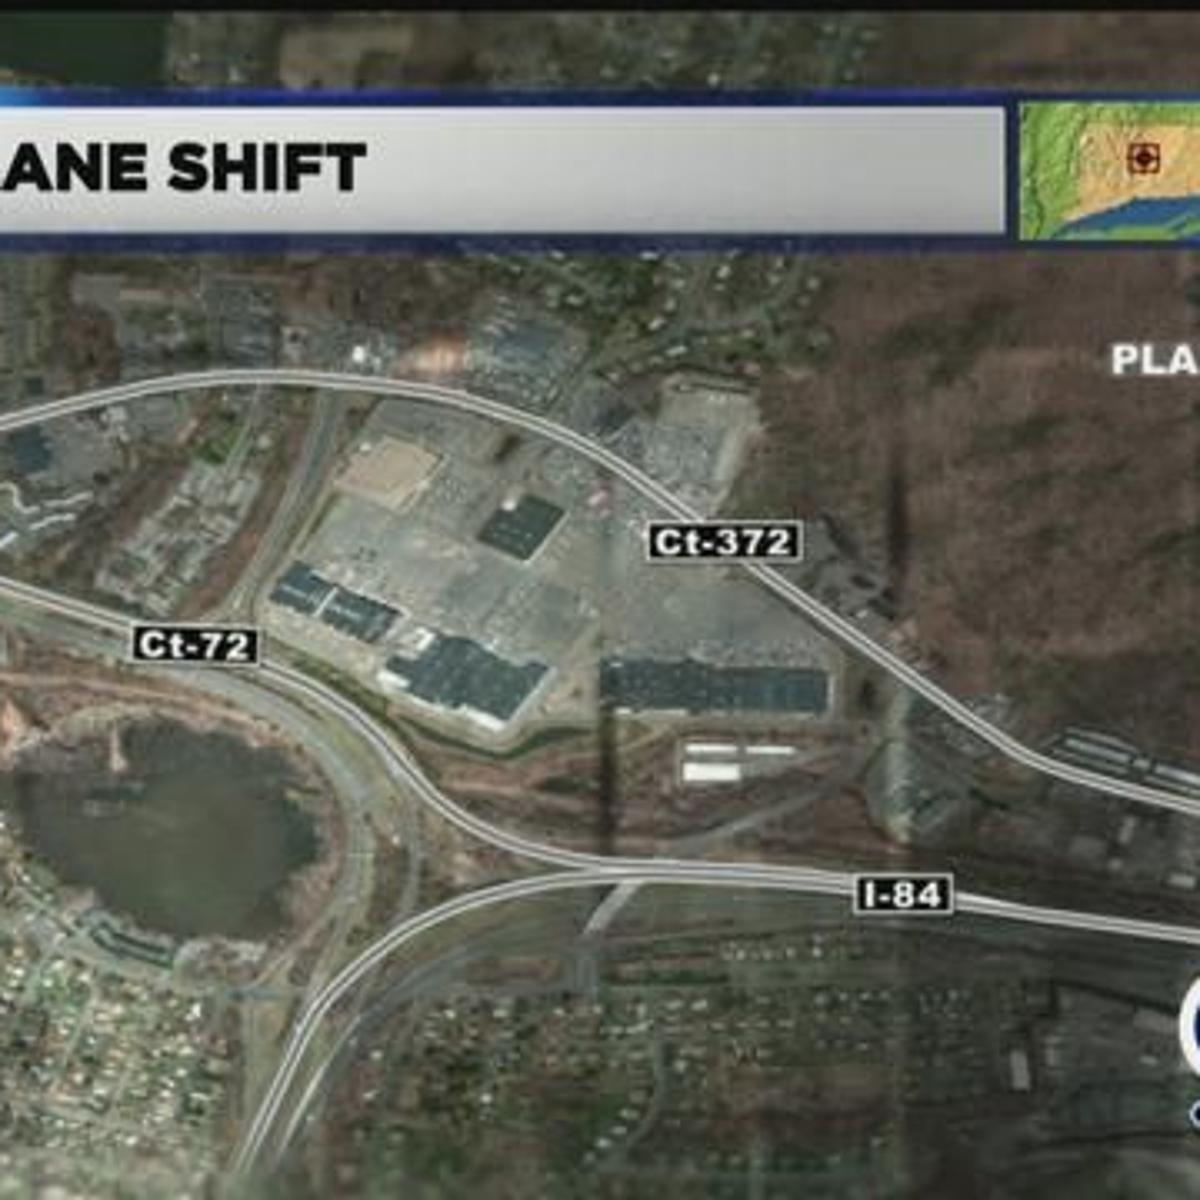 Lane shift expected to impact I-84 traffic in Plainville